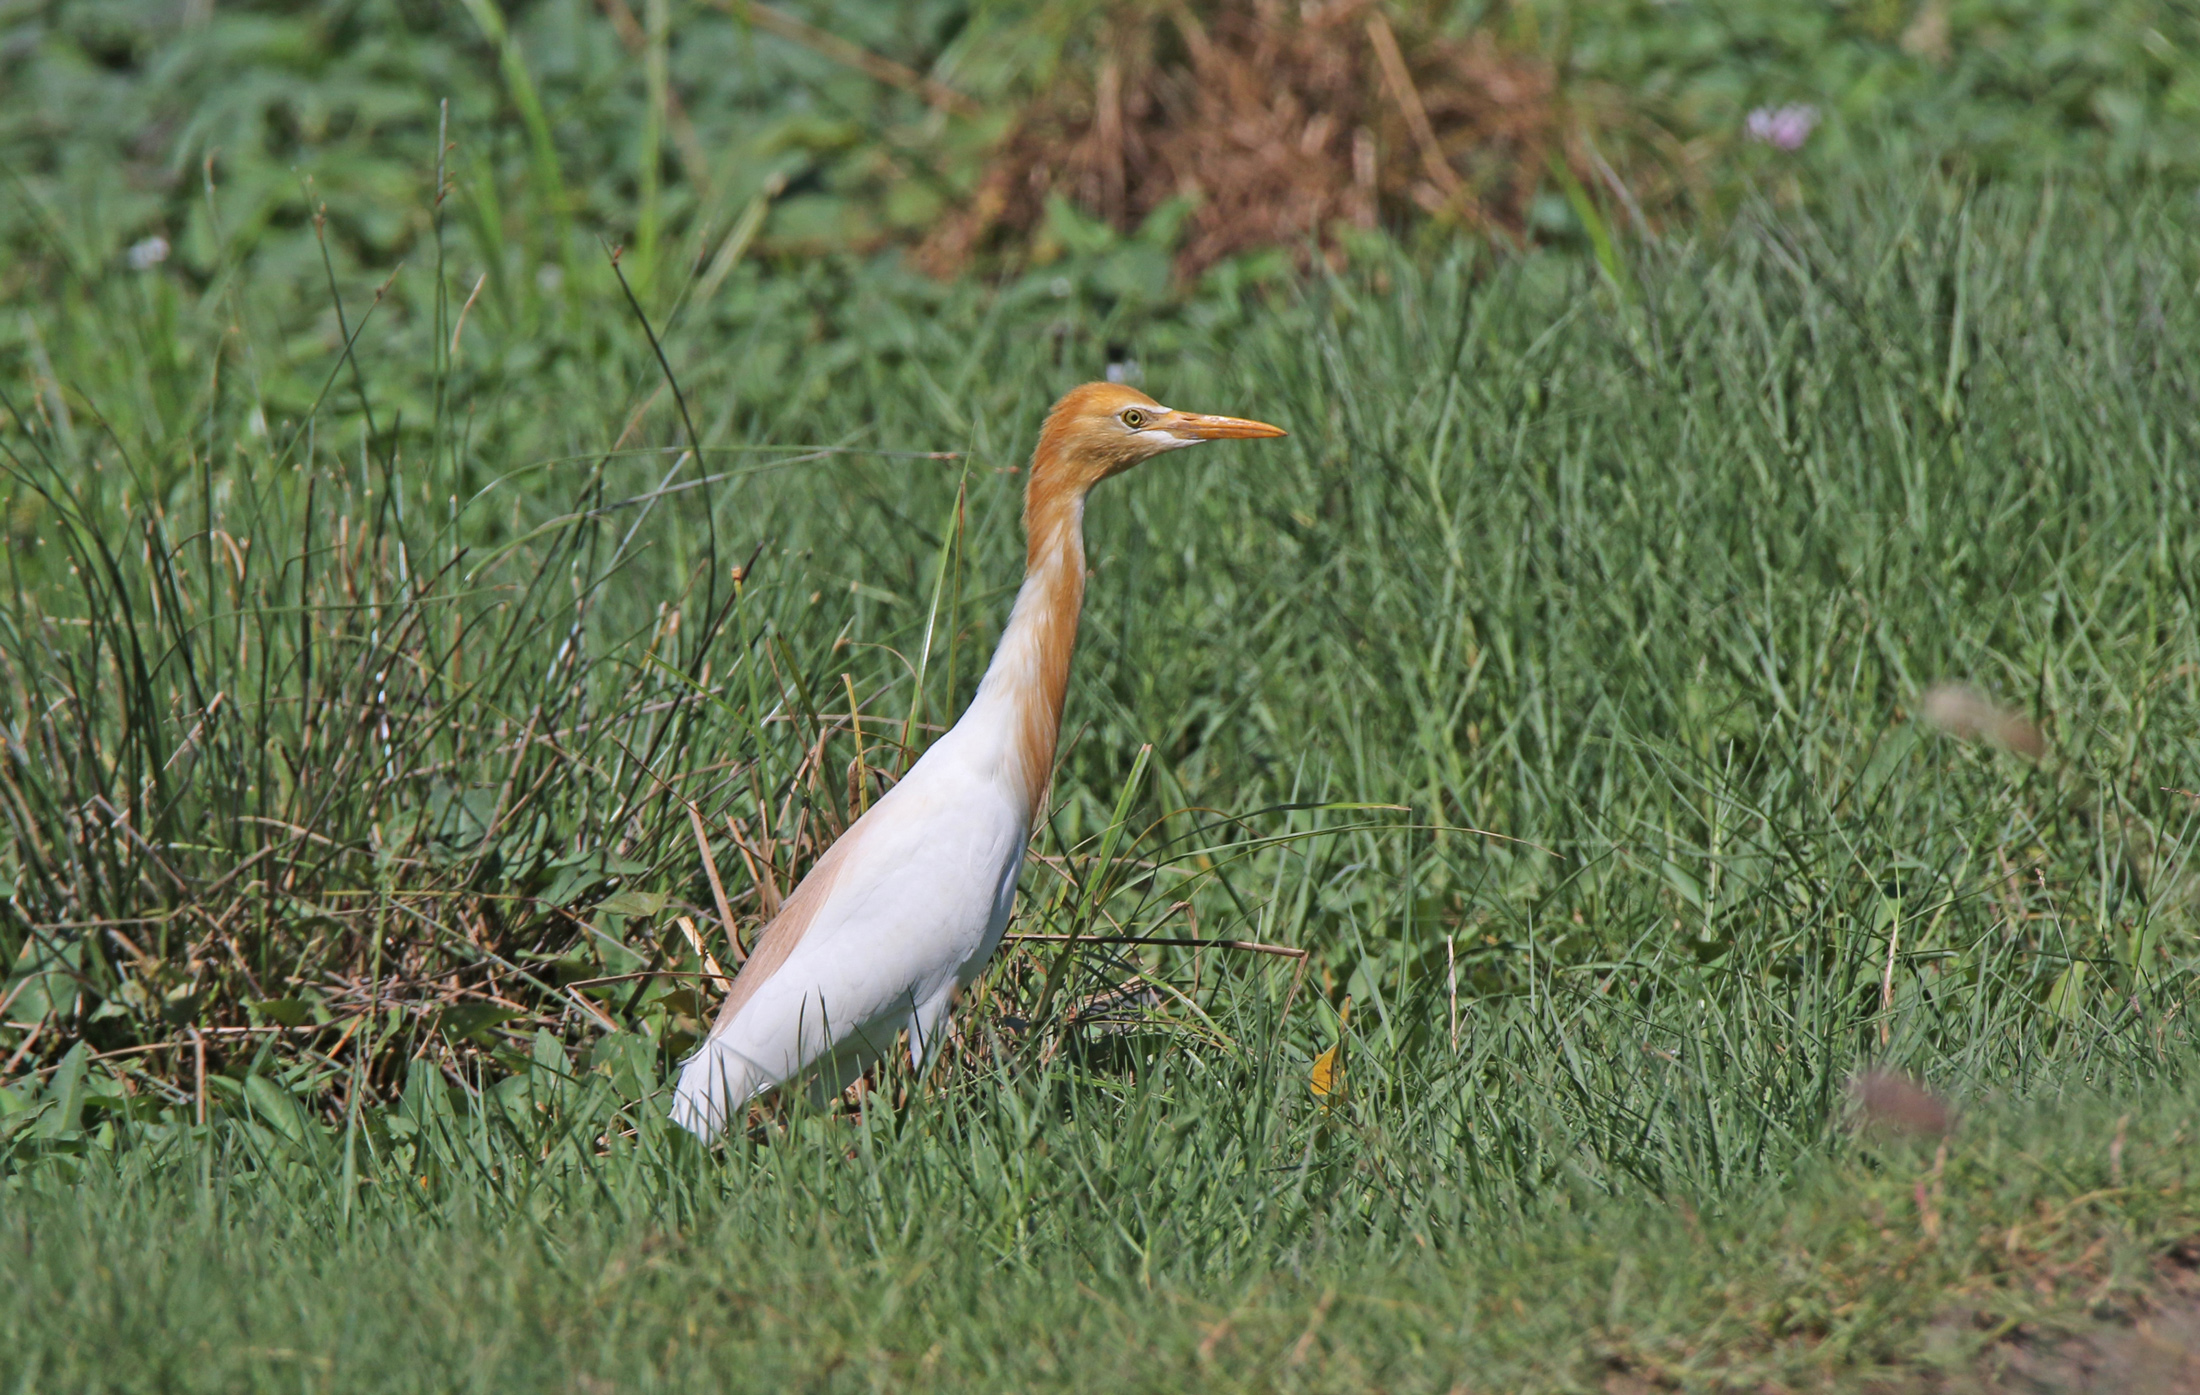 Eastern Cattle Egret. Photo by Pete SImpson.